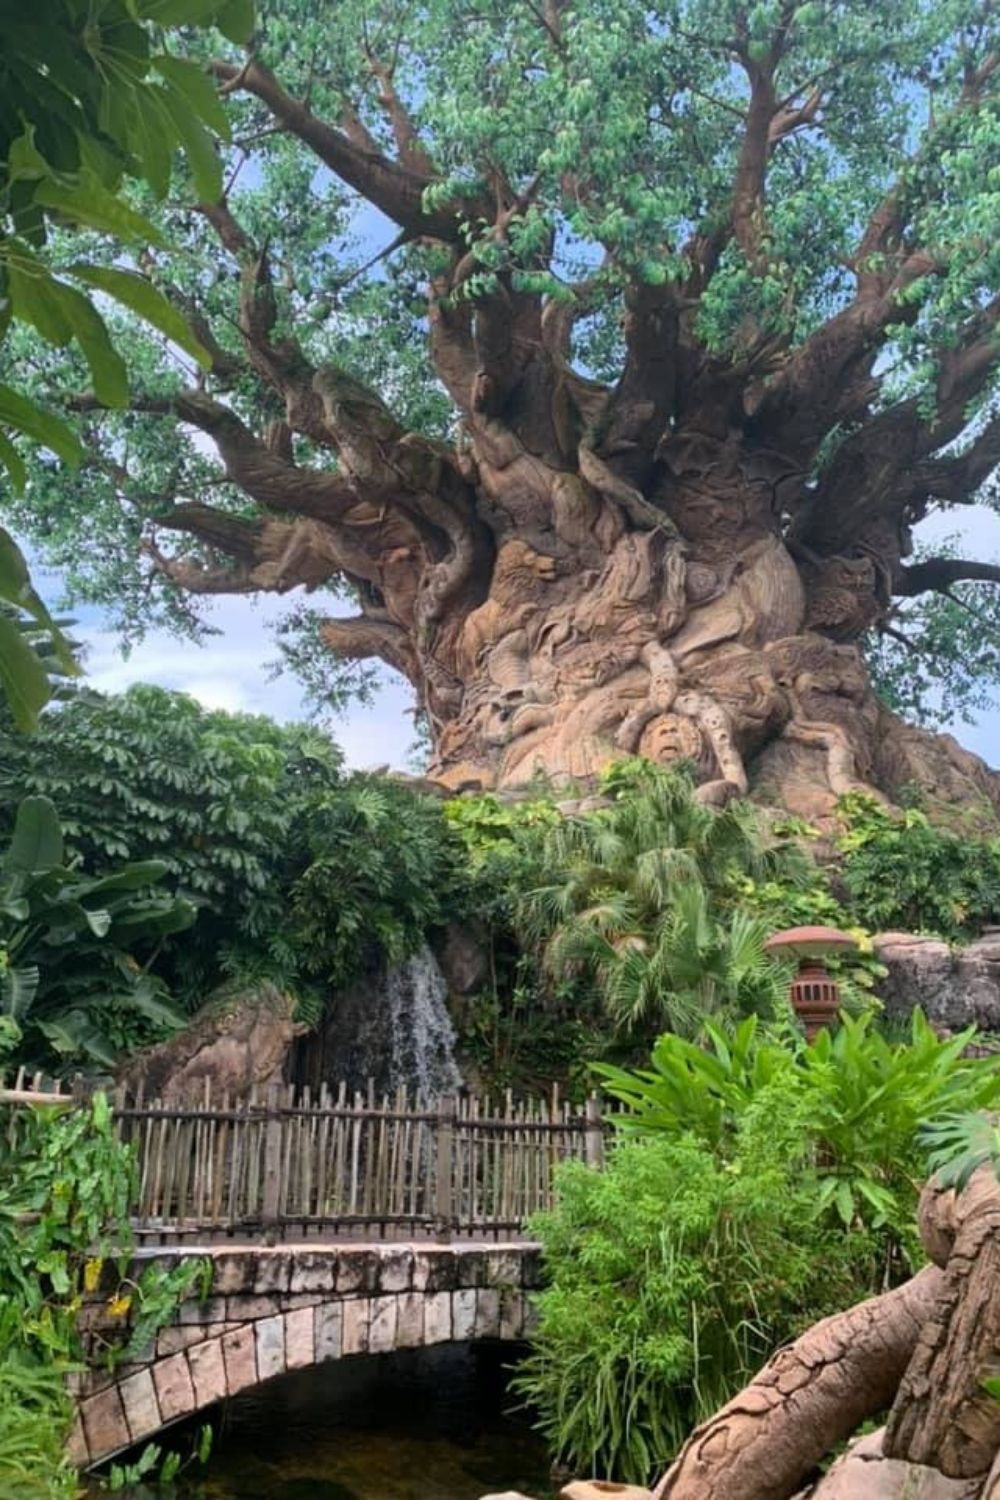 Disney World in a Day? Yep, it's possible. If you only have one day at Walt Disney World and you want to get the most out of it, get yourself a park hopper ticket and follow these basic guidelines. #disneytips #disneyplanningtips #disneyworld